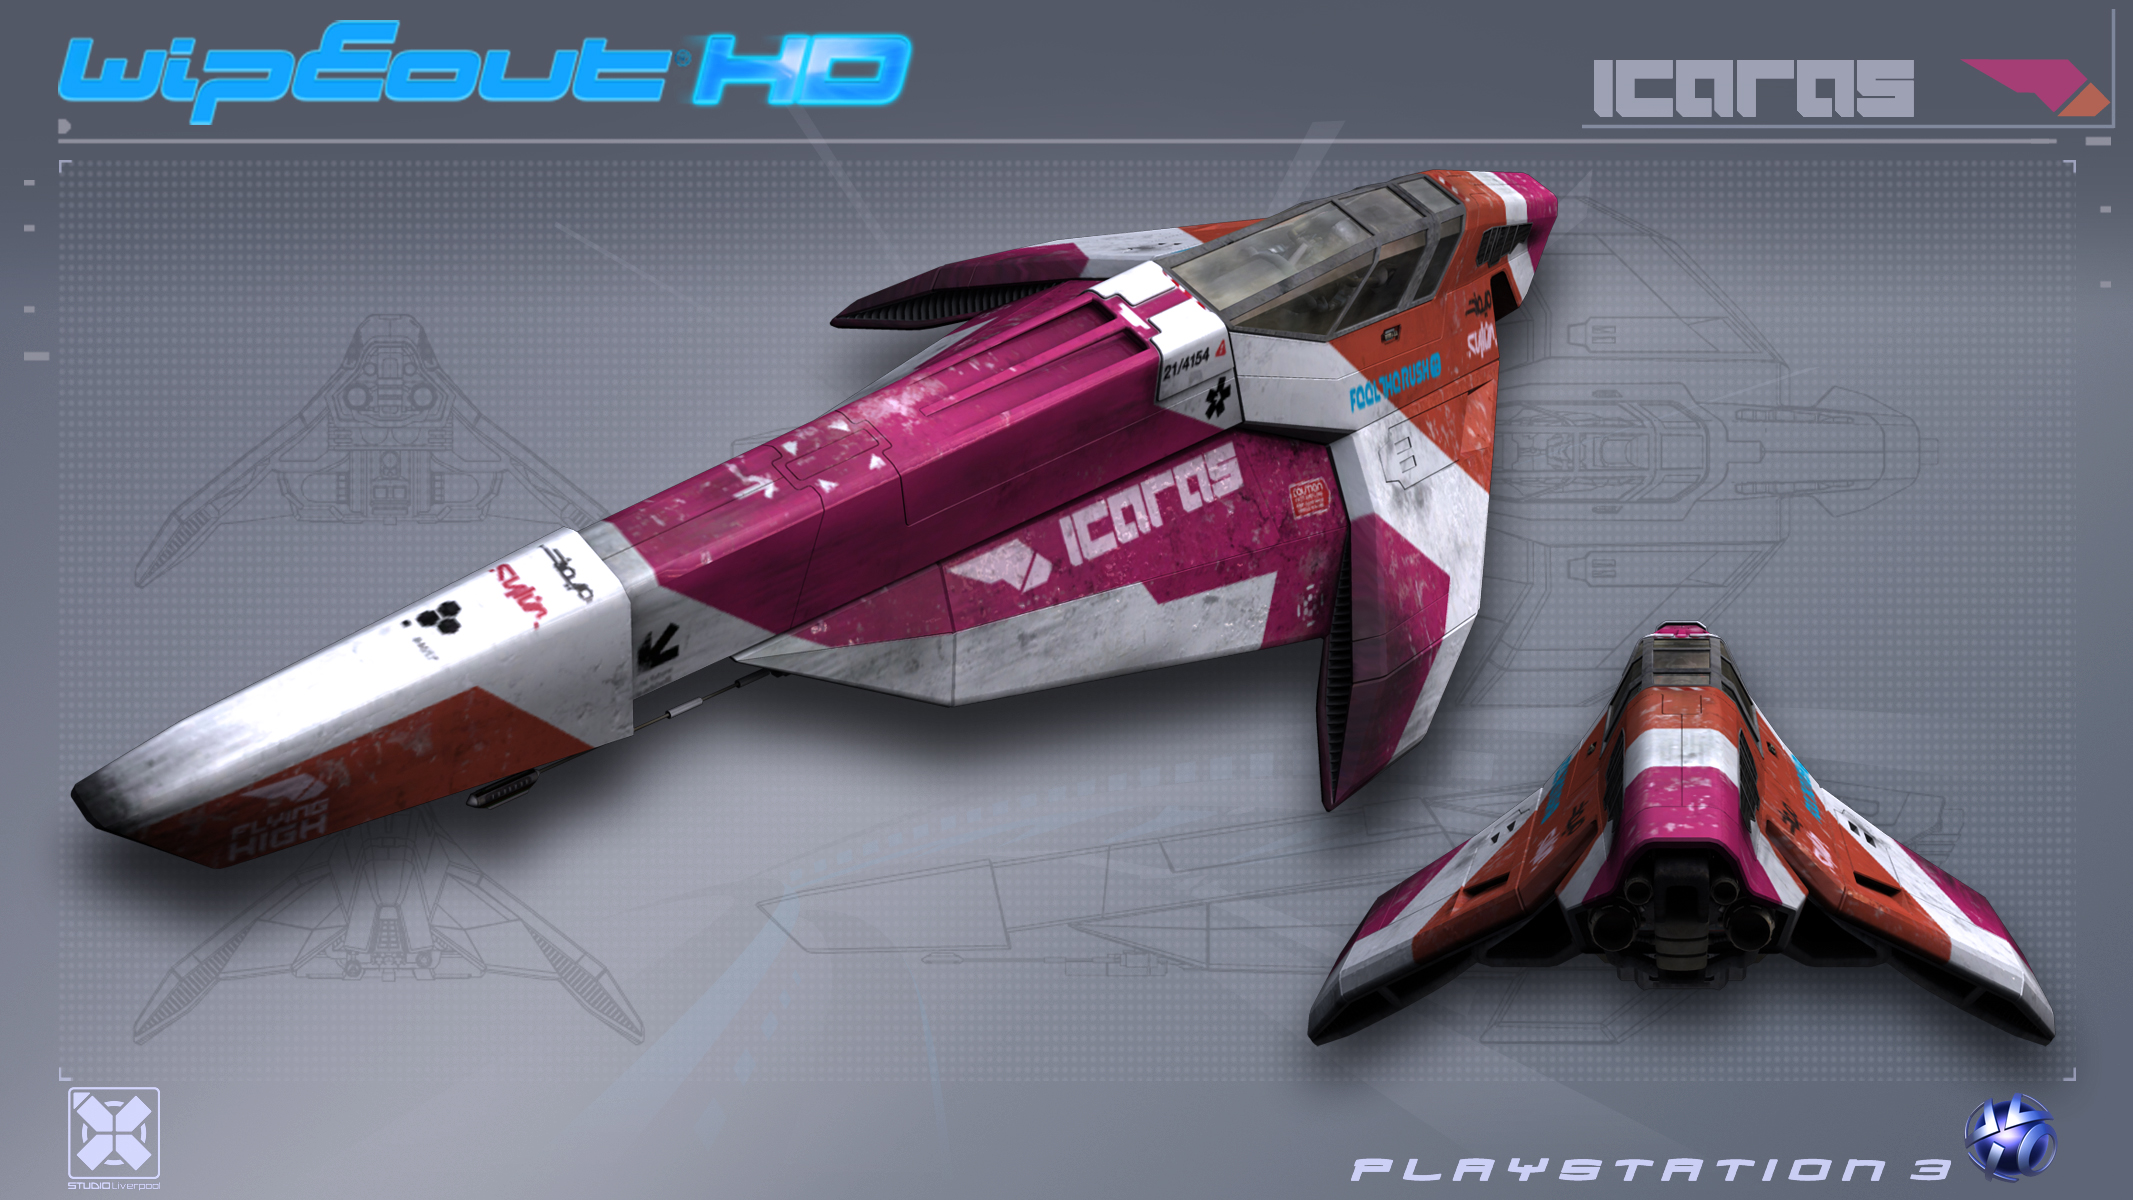 [LEGO] Moc Icaras version LEGO ( wipeout HD sur ps3). Icaras___WipEout_HD___PS3_by_nocomplys